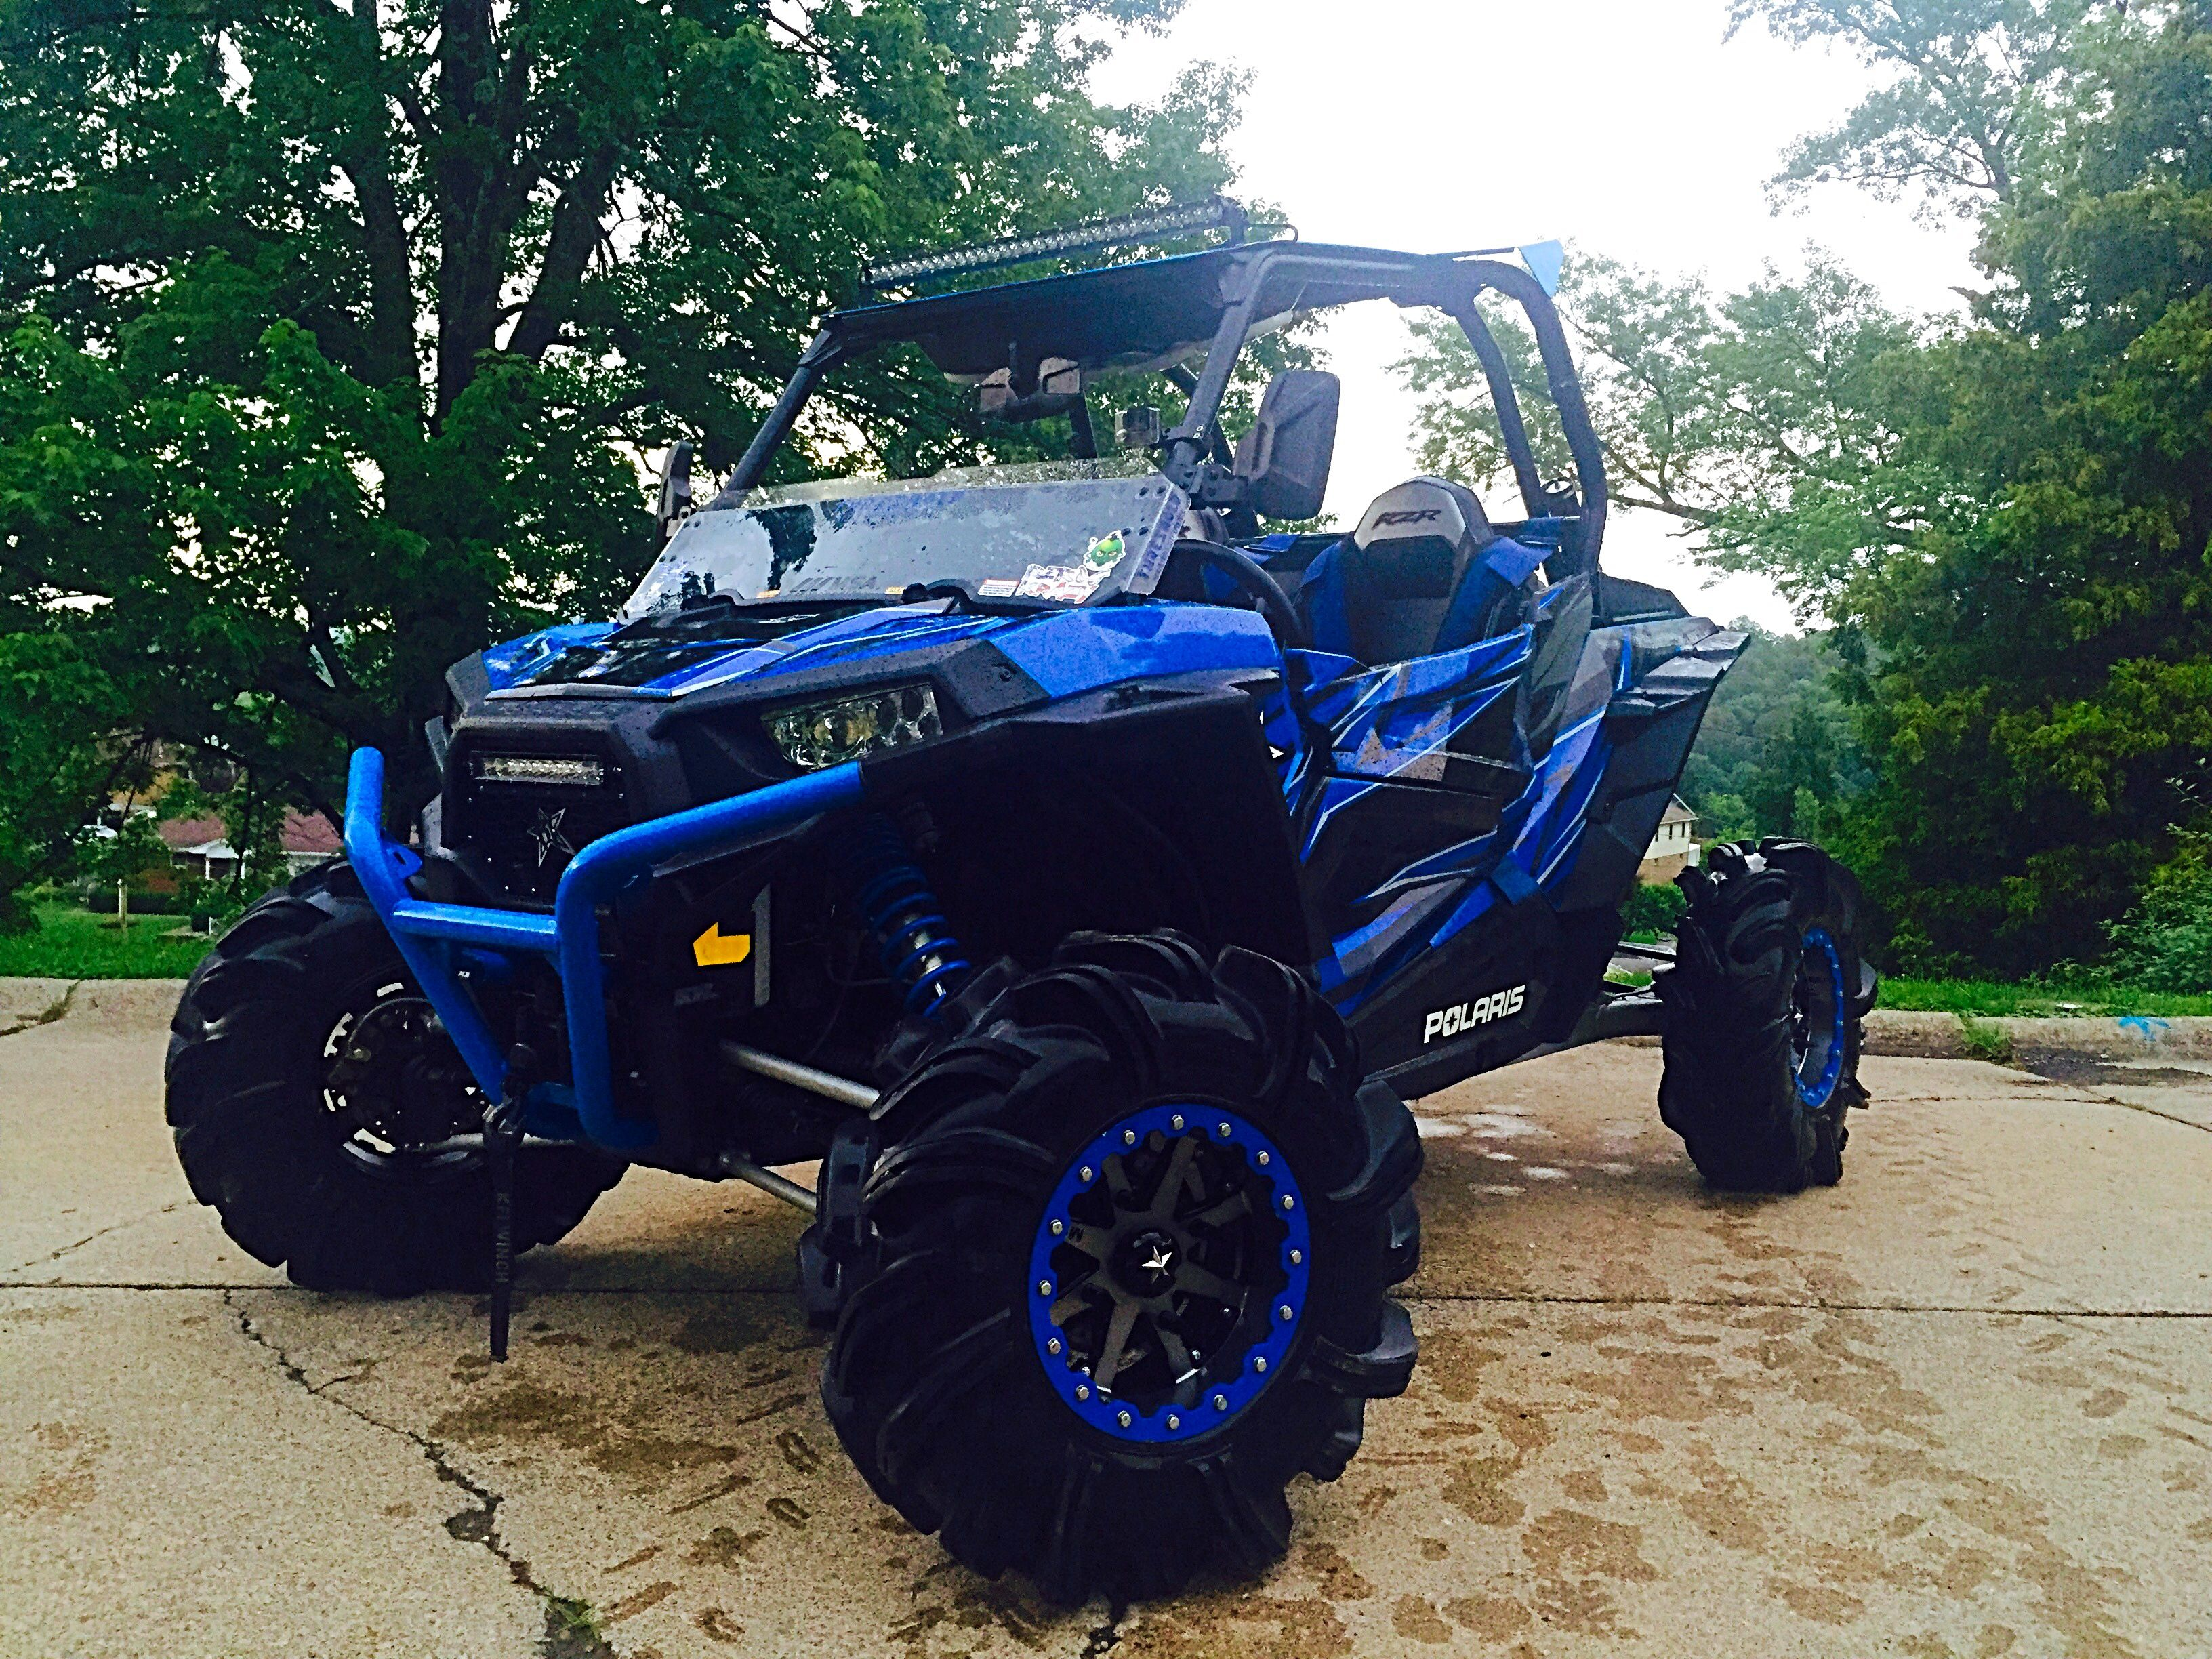 Wvguy90 Winner of August 2015 RZR of the Month Polaris RZR